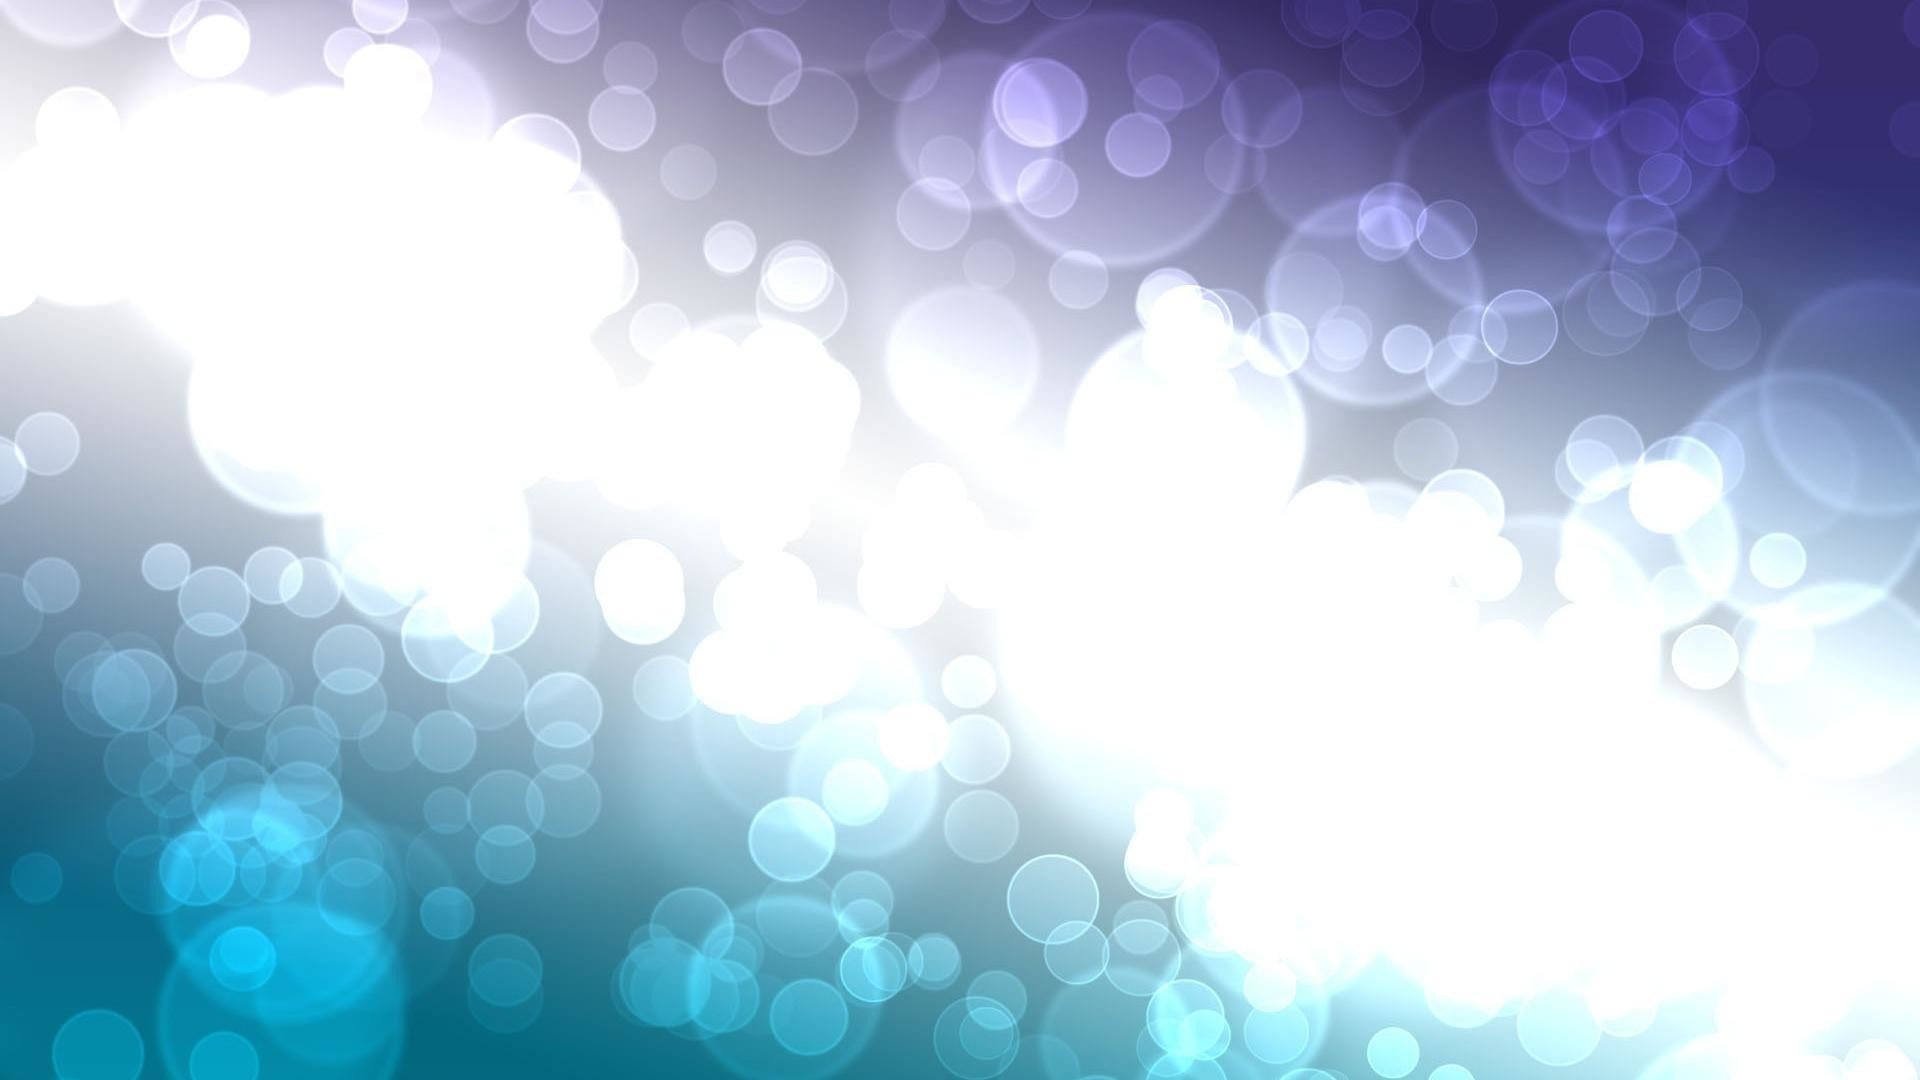 Abstract Light Background 81. Download Full Size File